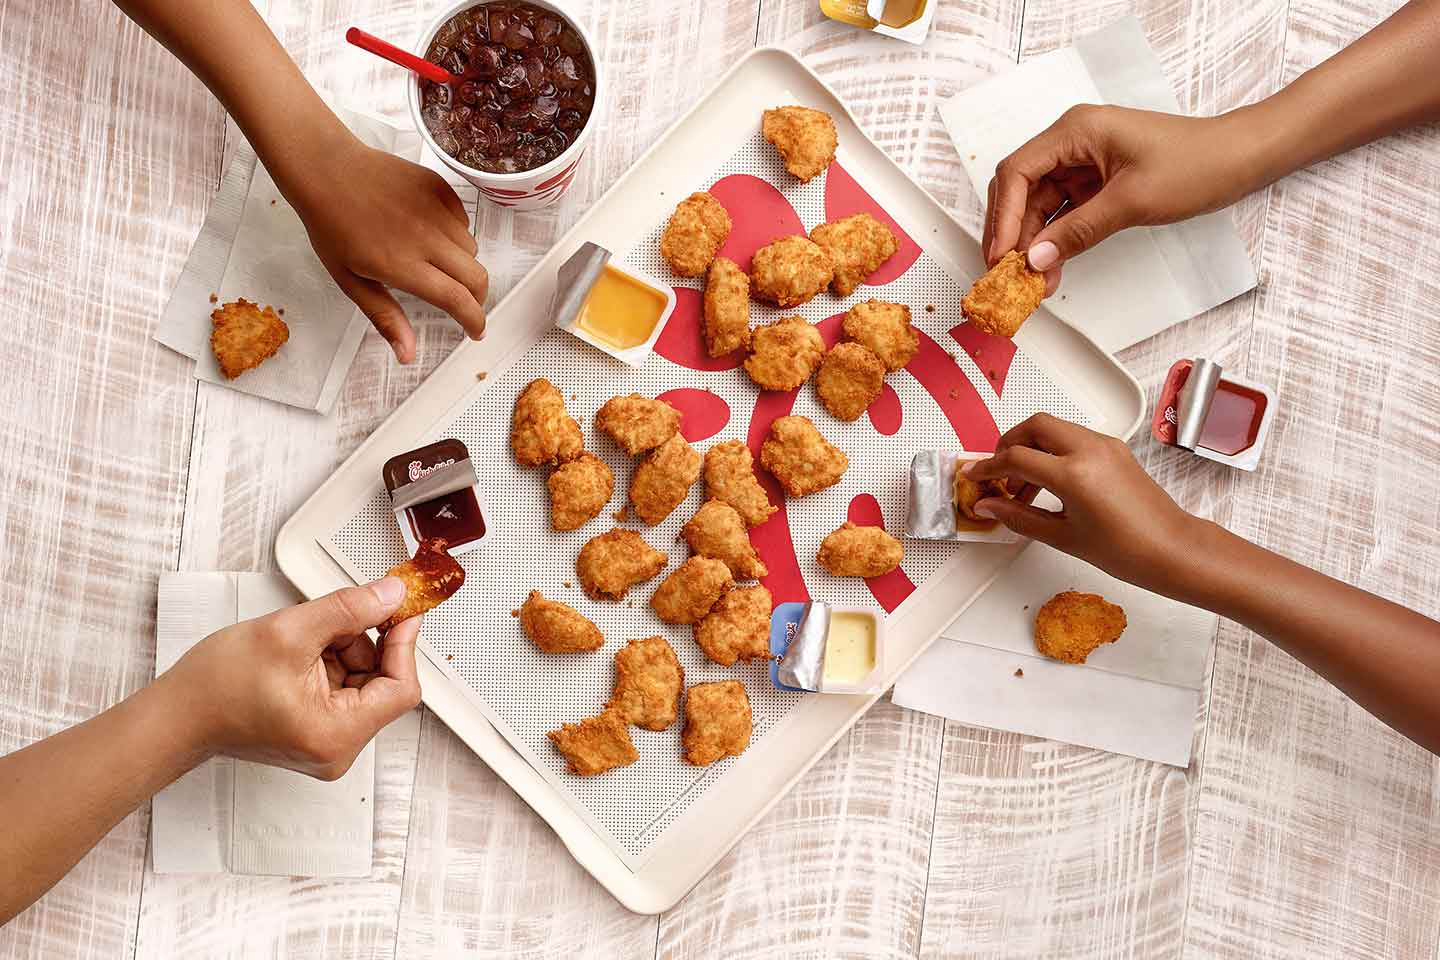 Chick-fil-A Nuggets Spread